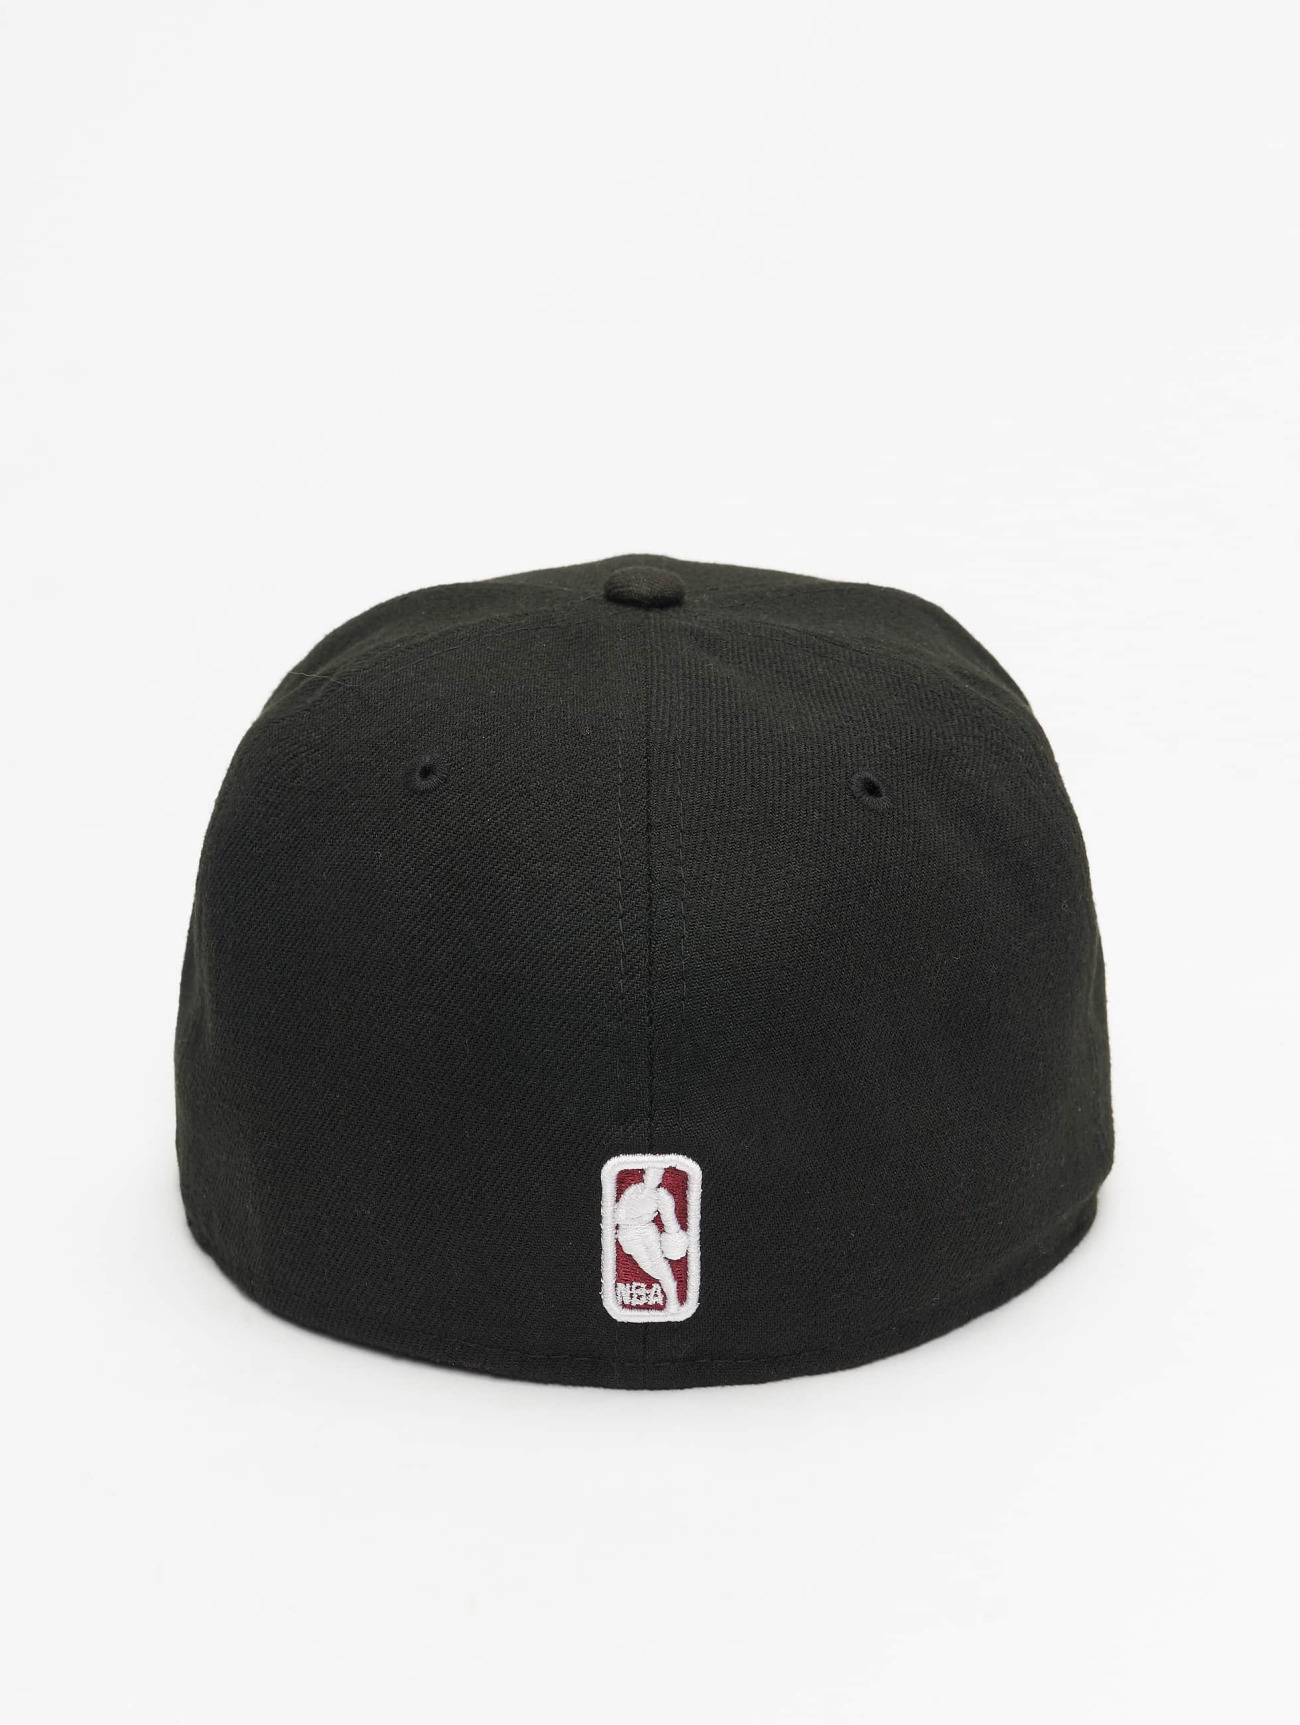 New Era  NBA Basic Miami Heat 59Fifty  noir  Casquette Fitted  104704 Homme Casquettes